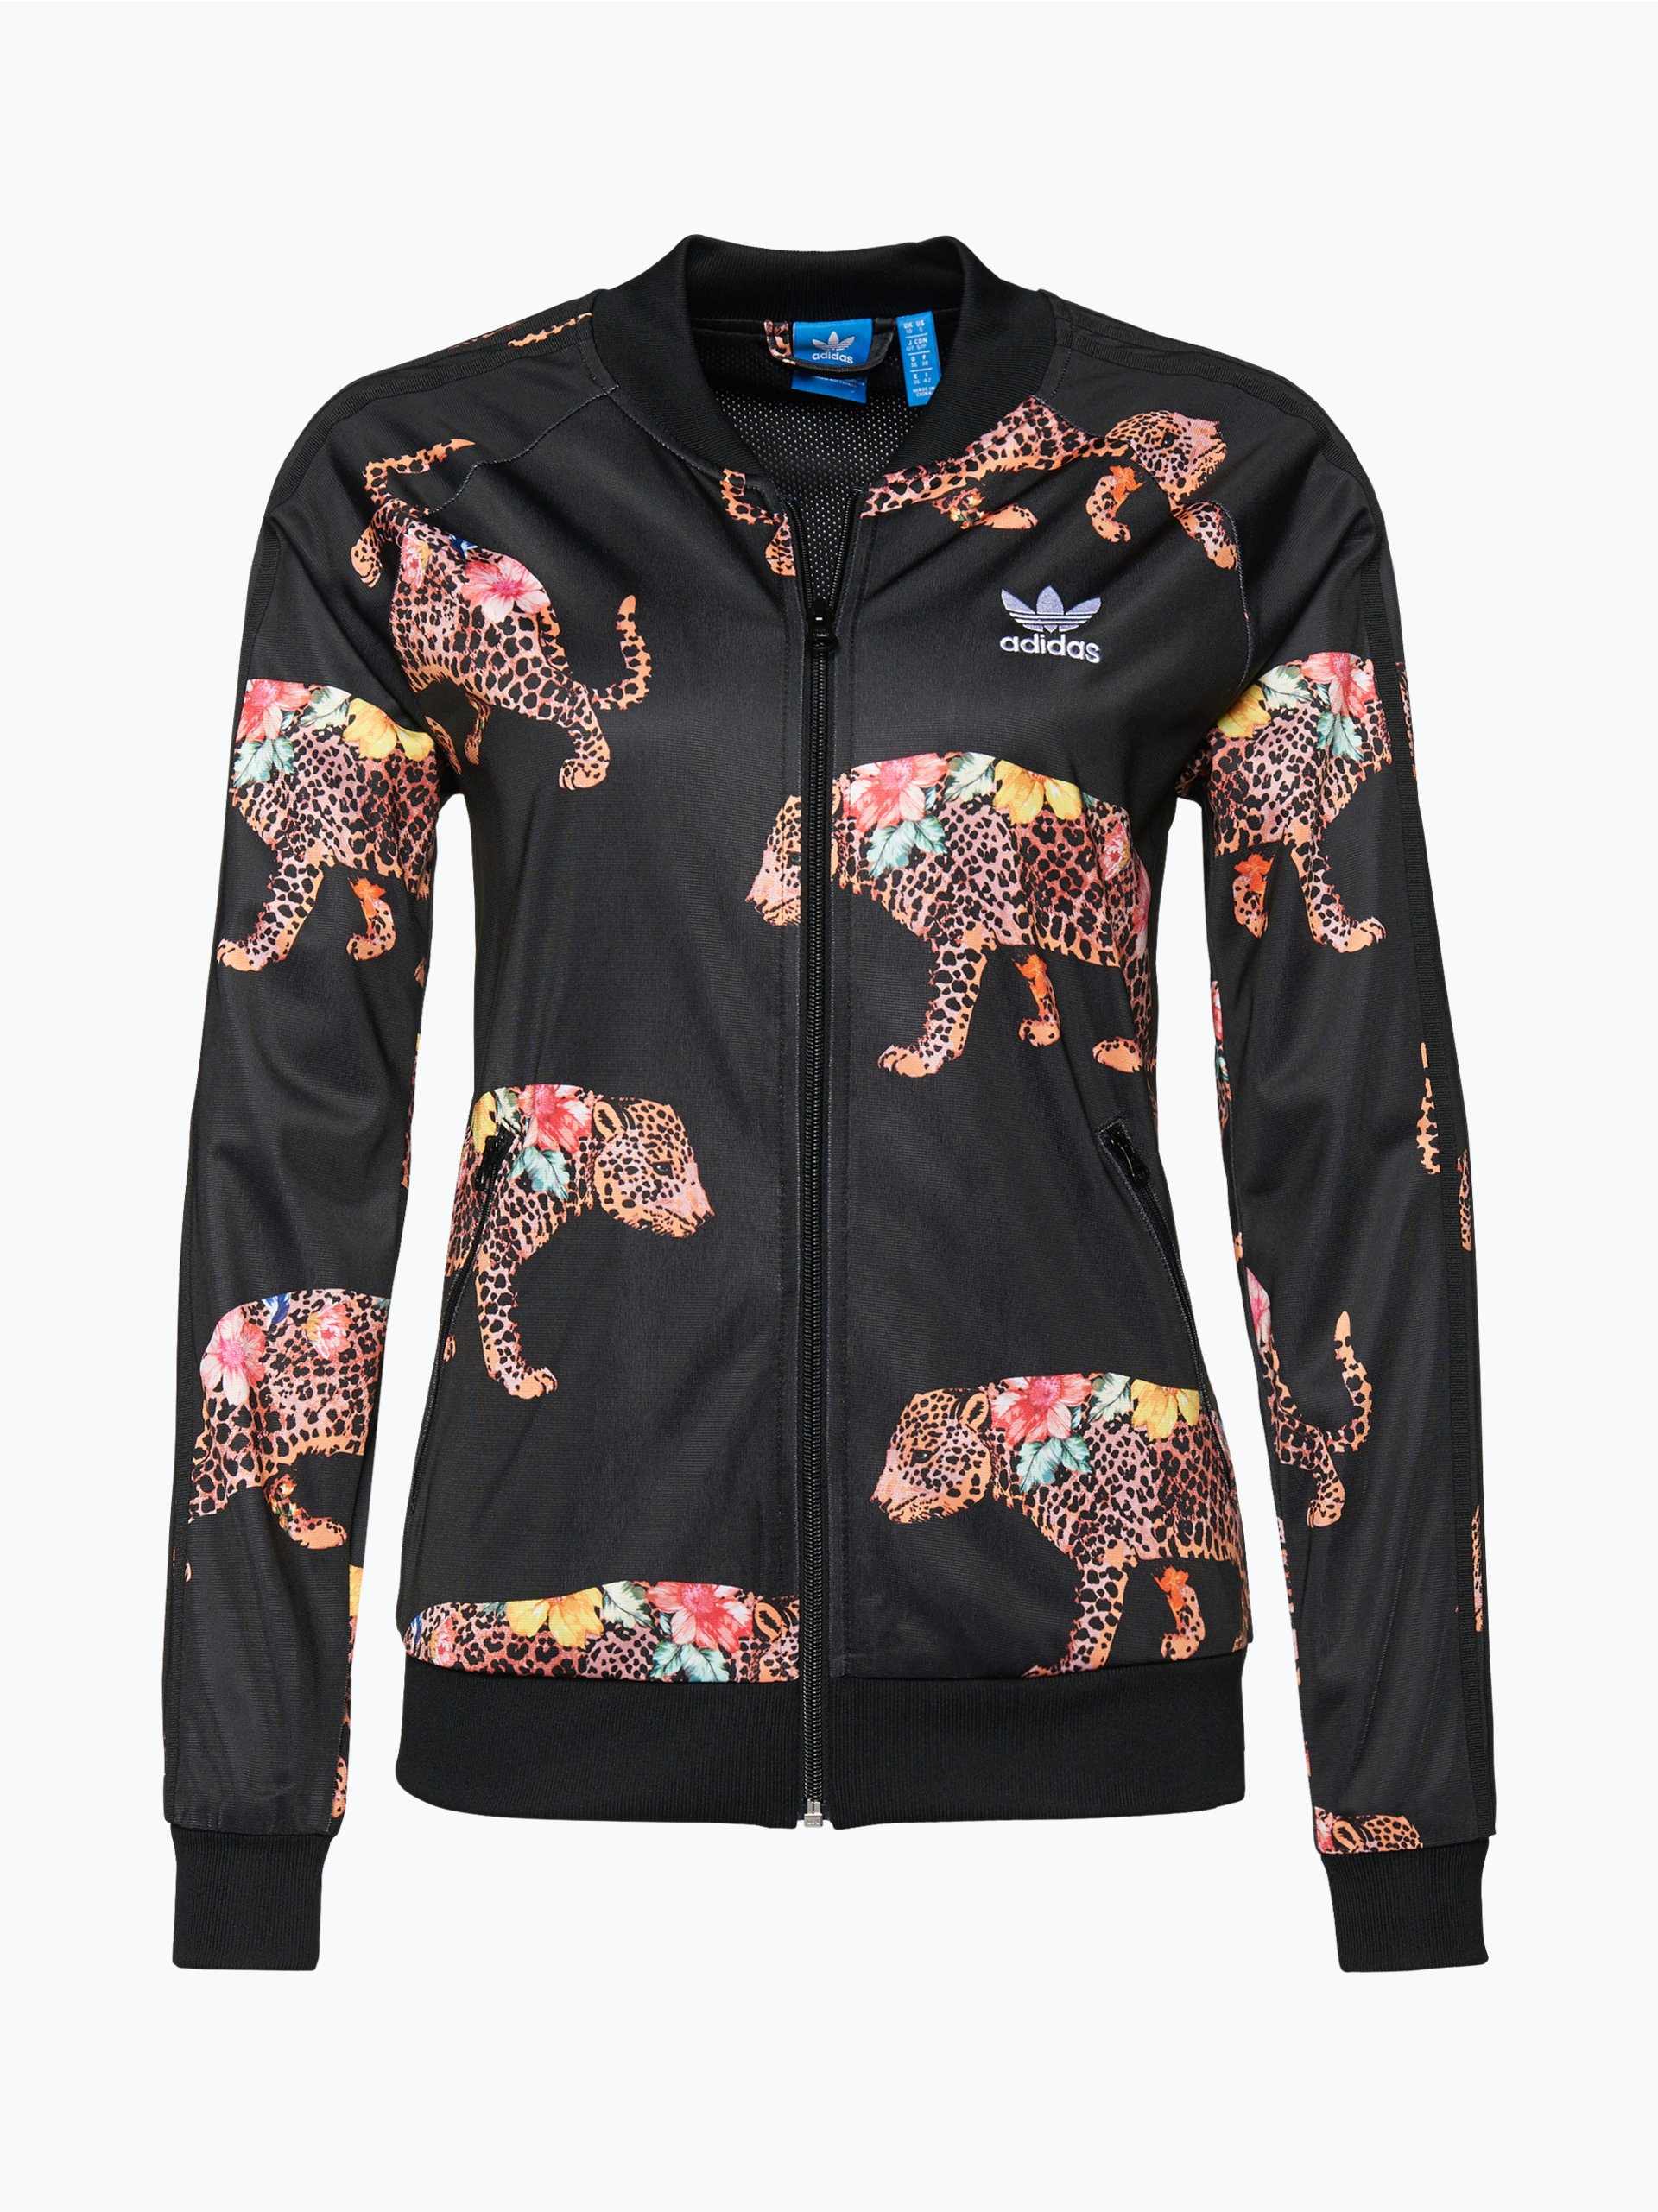 adidas Originals Damen Trainingsjacke - Oncada